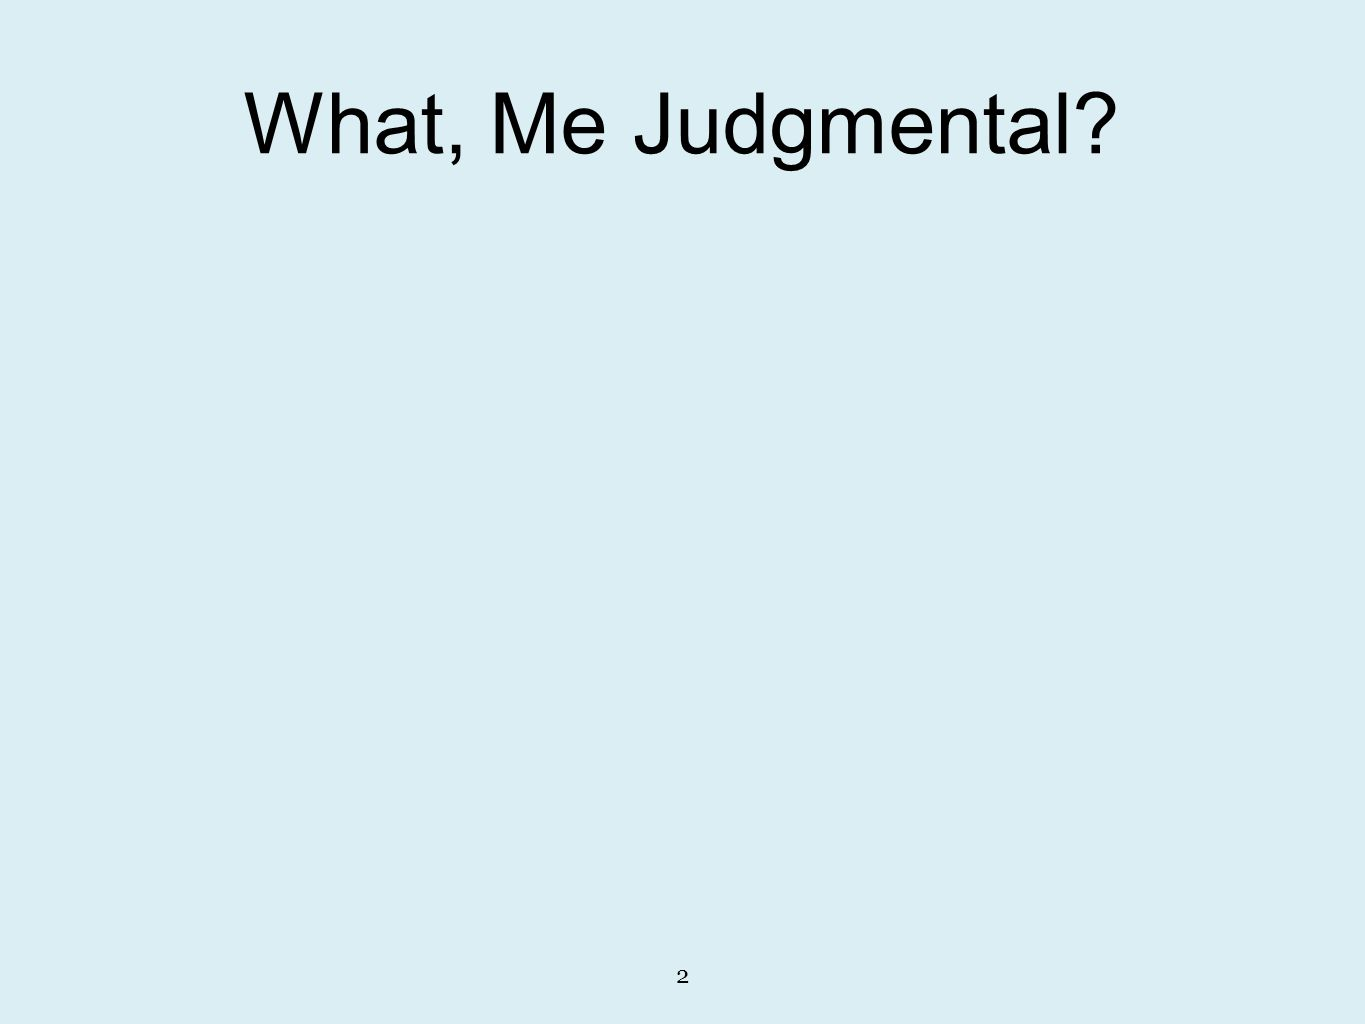 2 What, Me Judgmental?